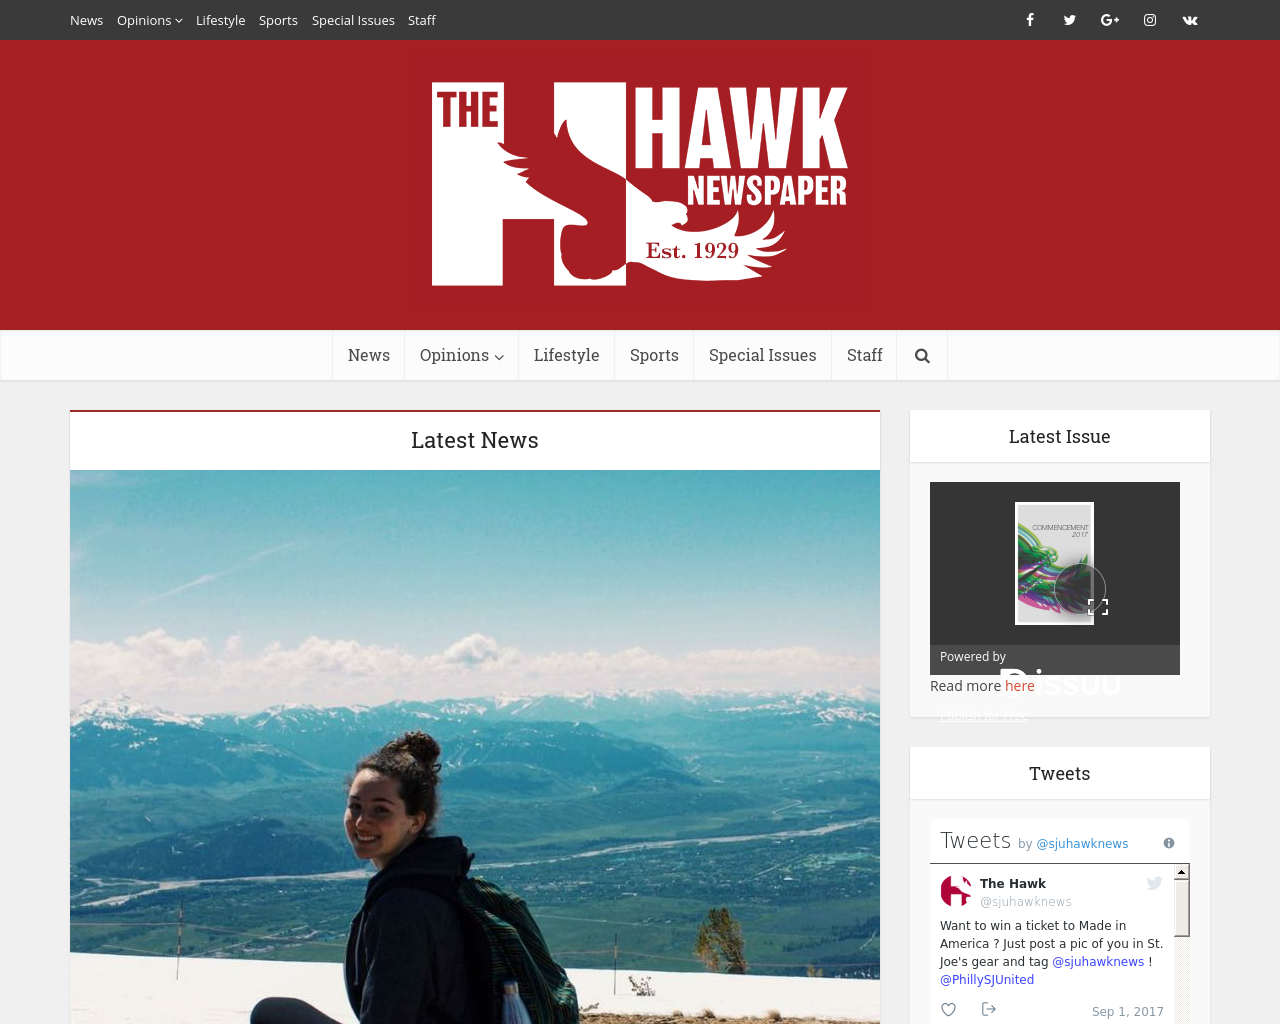 THE-HAWK-Advertising-Reviews-Pricing